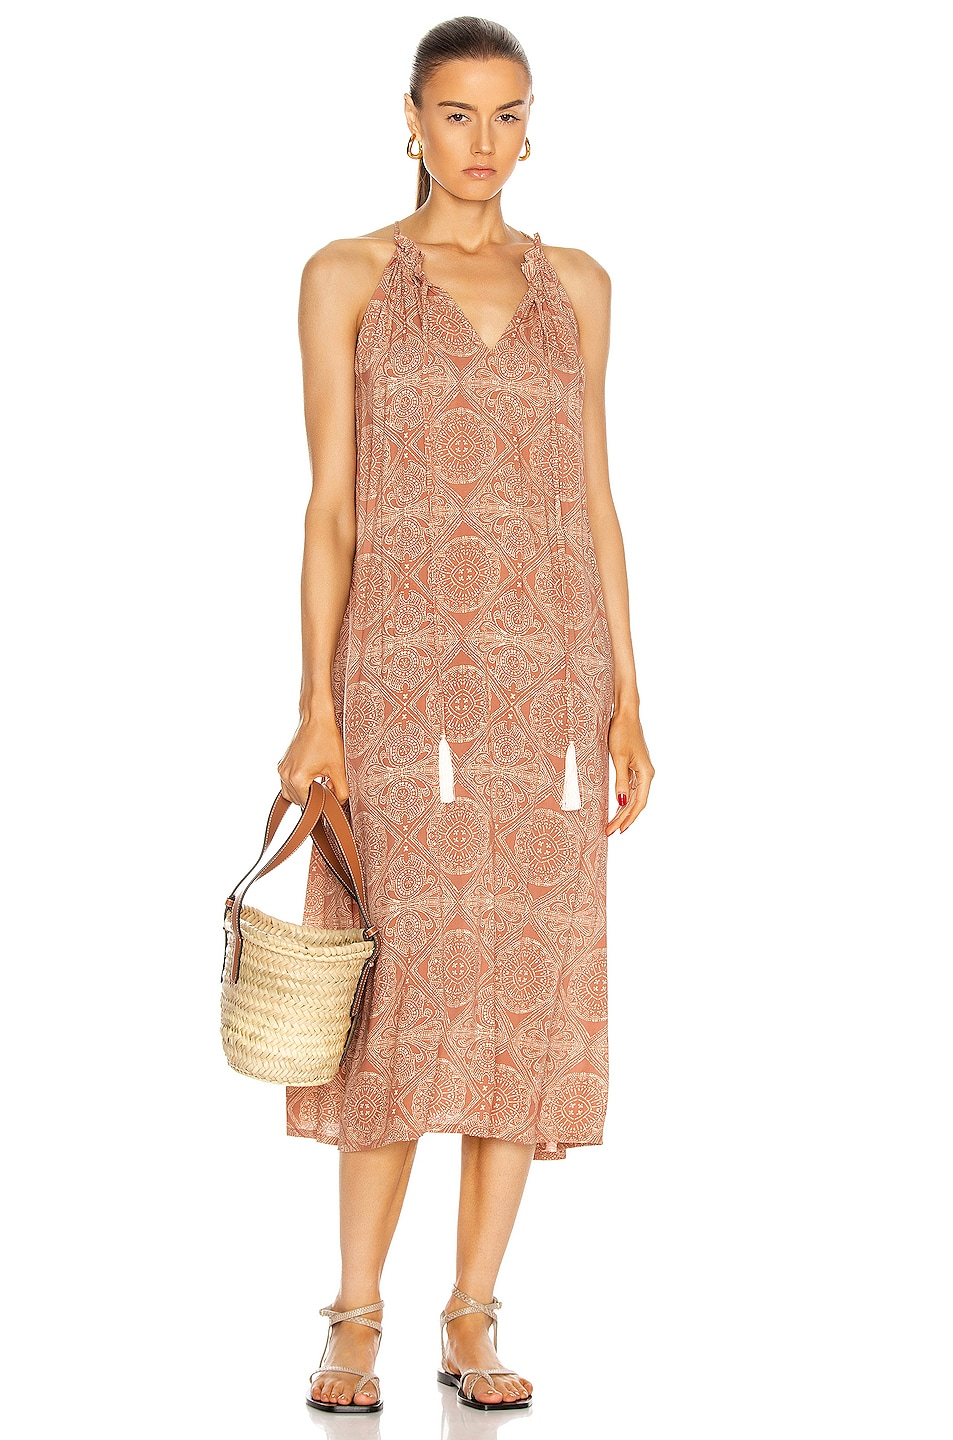 Image 1 of Natalie Martin Marlien Maxi Dress in Moroccan Tile Clay